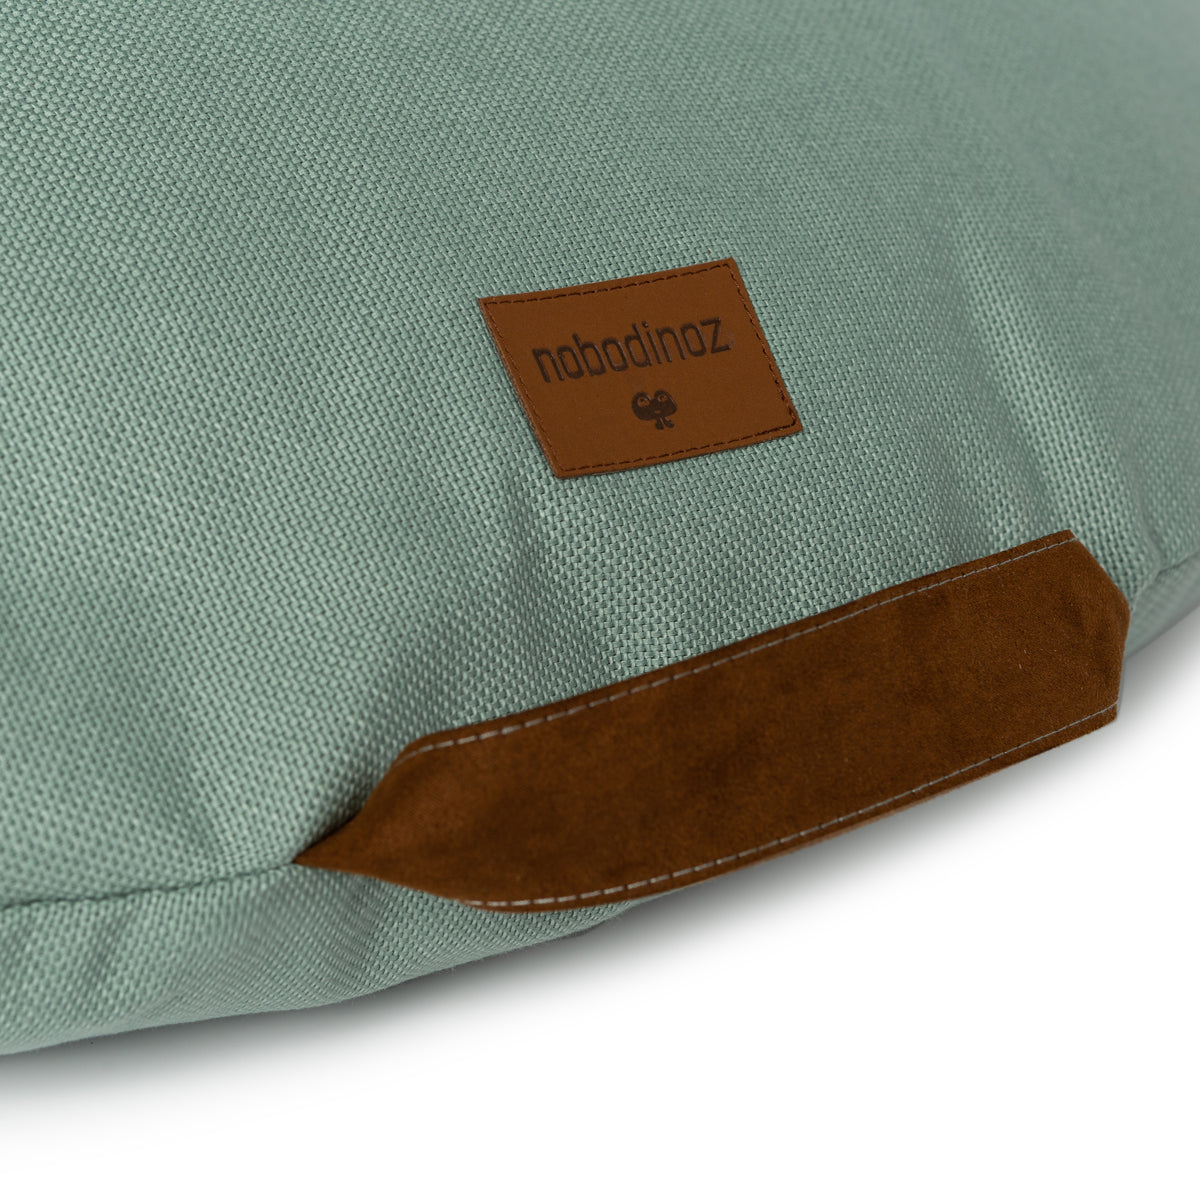 Nobodinoz Sahara floor cushion • Eden Green